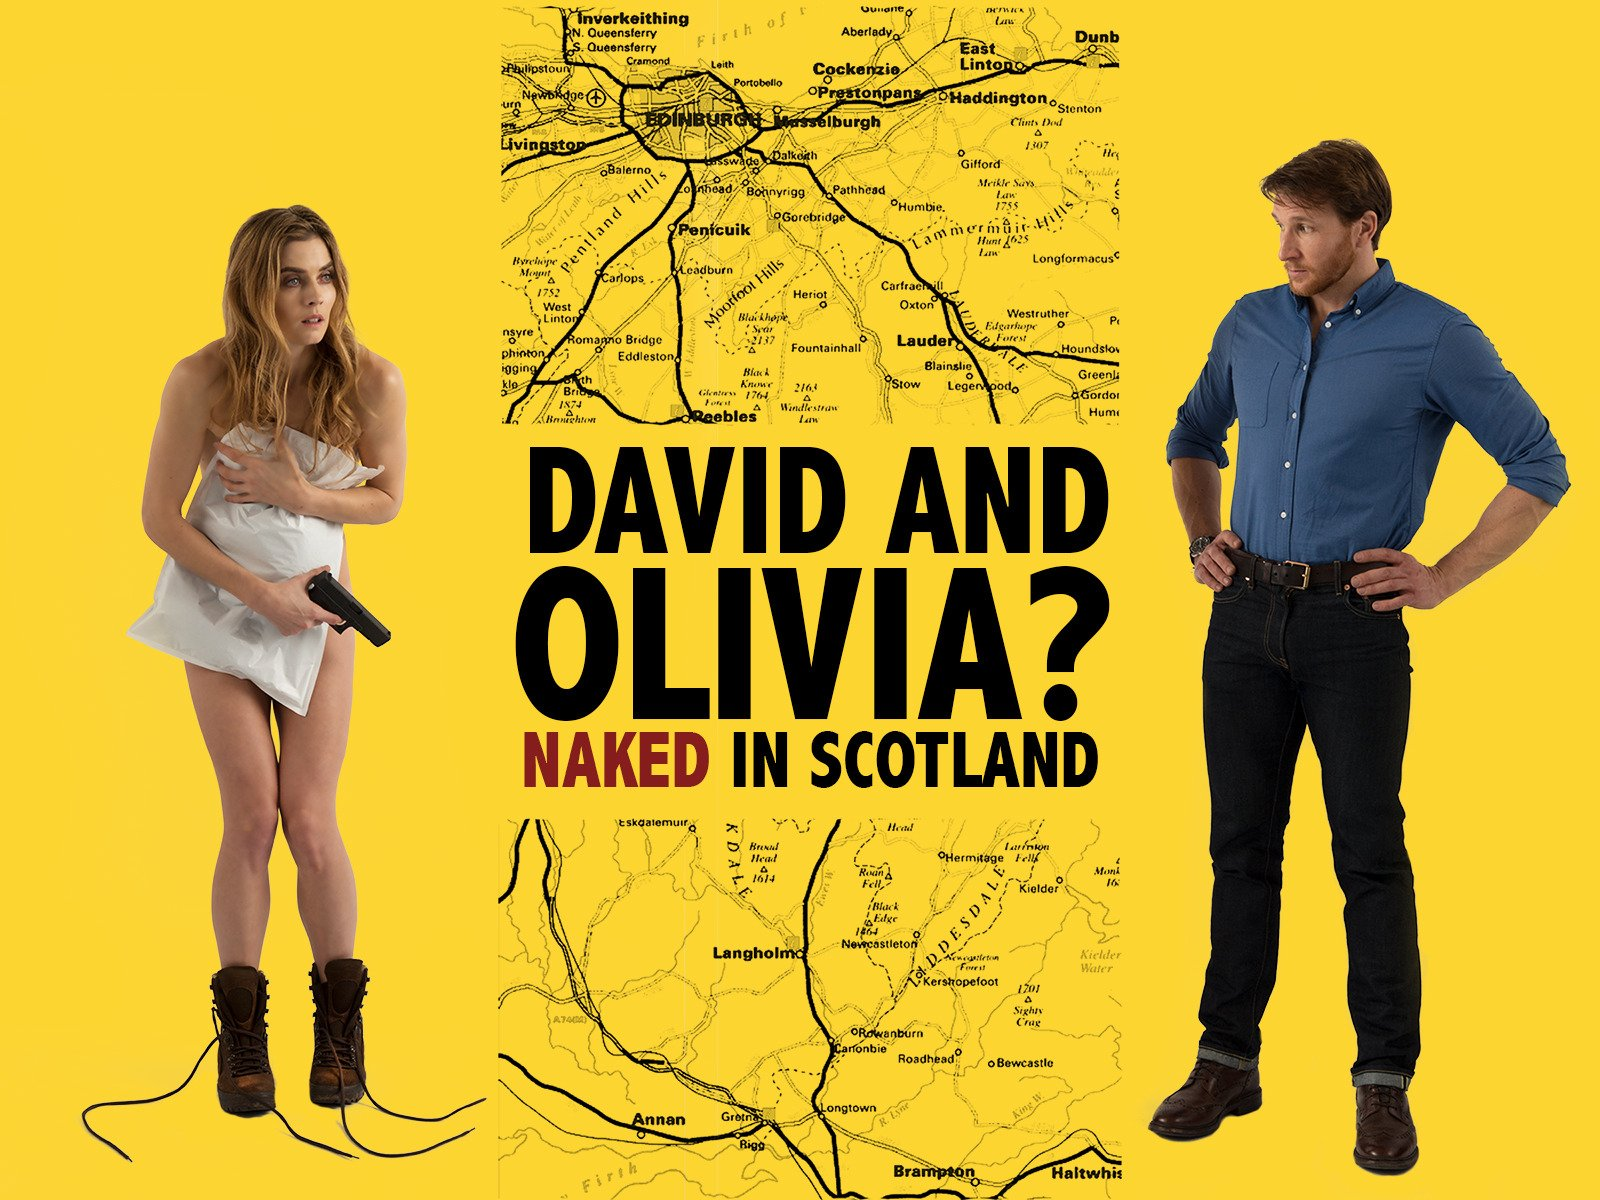 Amazon.com: David and Olivia? - Naked in Scotland: Kate Braithwaite, Sean  Lerwill, Marshall Griffin, Taylor King, Jessica Carrol, Aldo Kane, Bianca  Cooper, ...